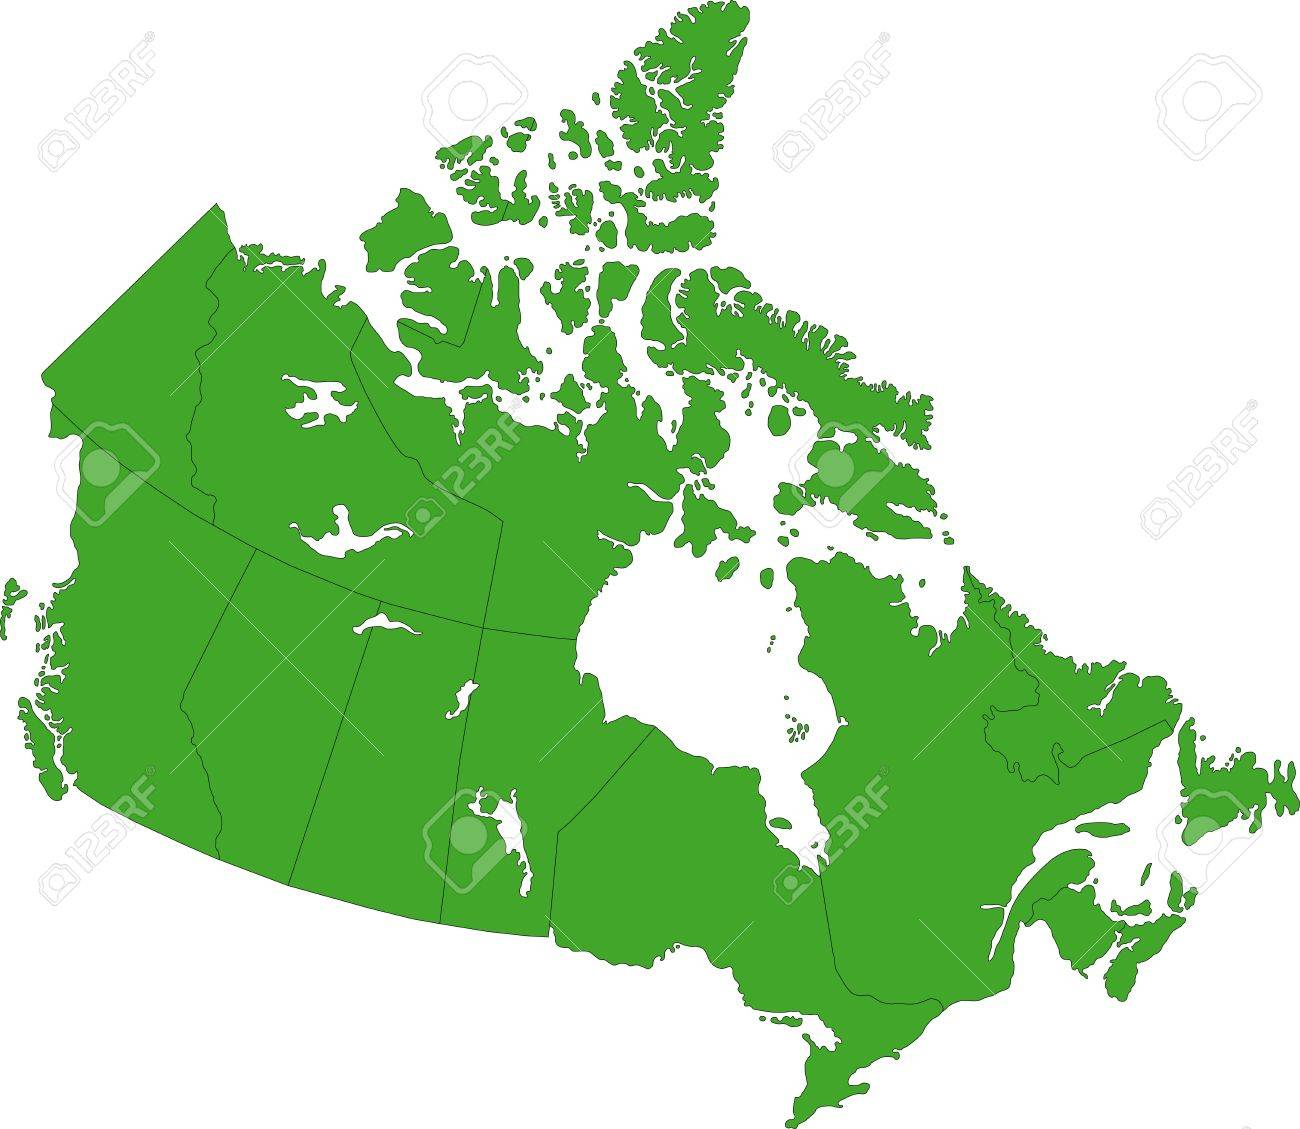 Provinces And Capitals Of Canada Map.Green Canada Map With Provinces And Capital Cities